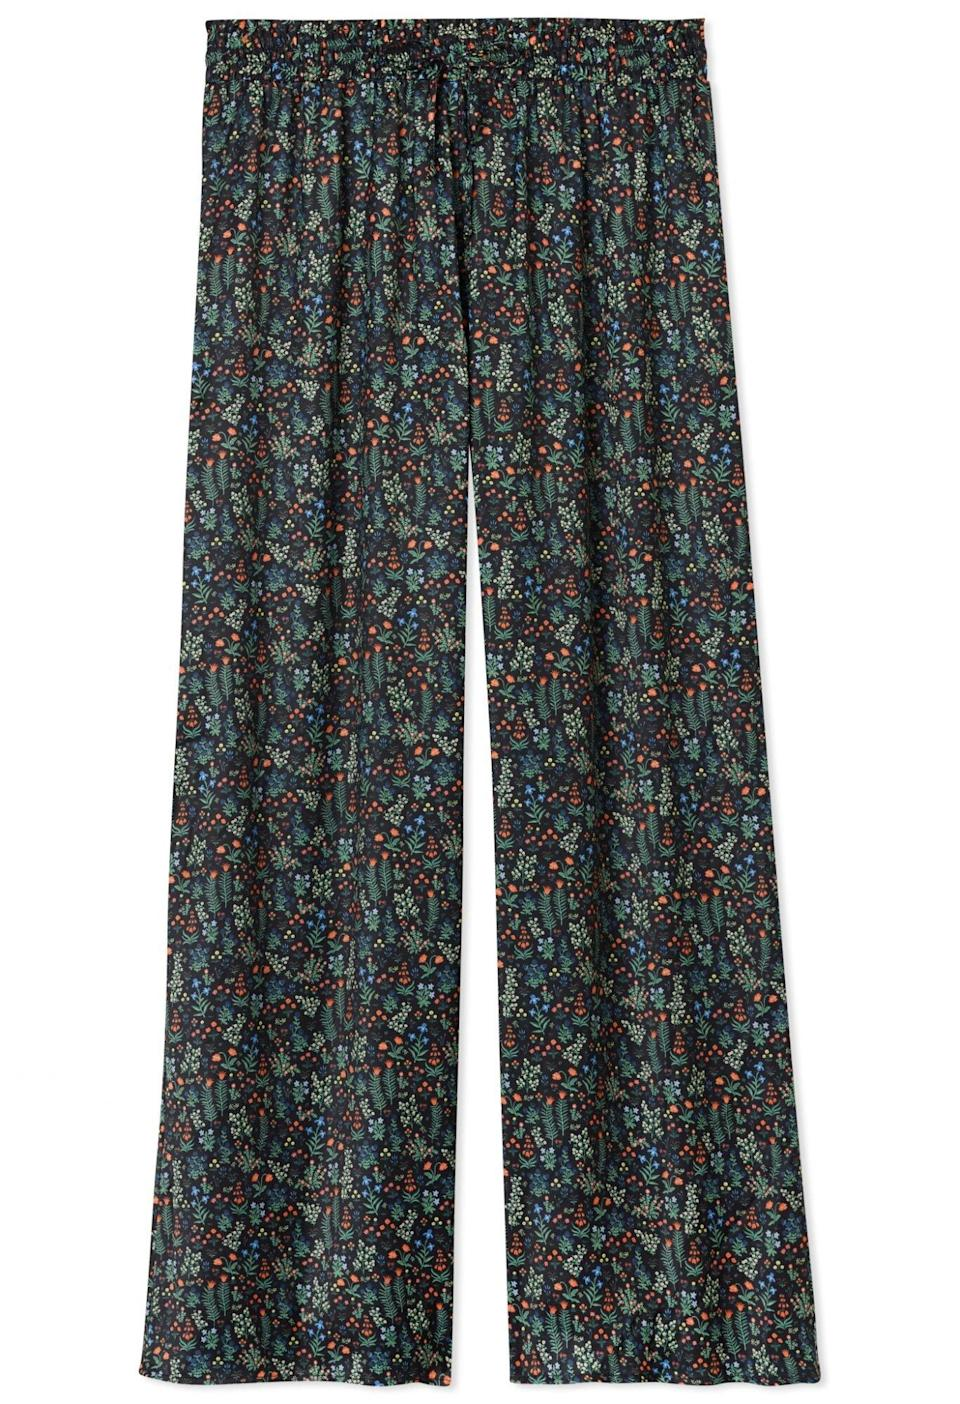 The Perfect Palazzo Pant in Menagerie